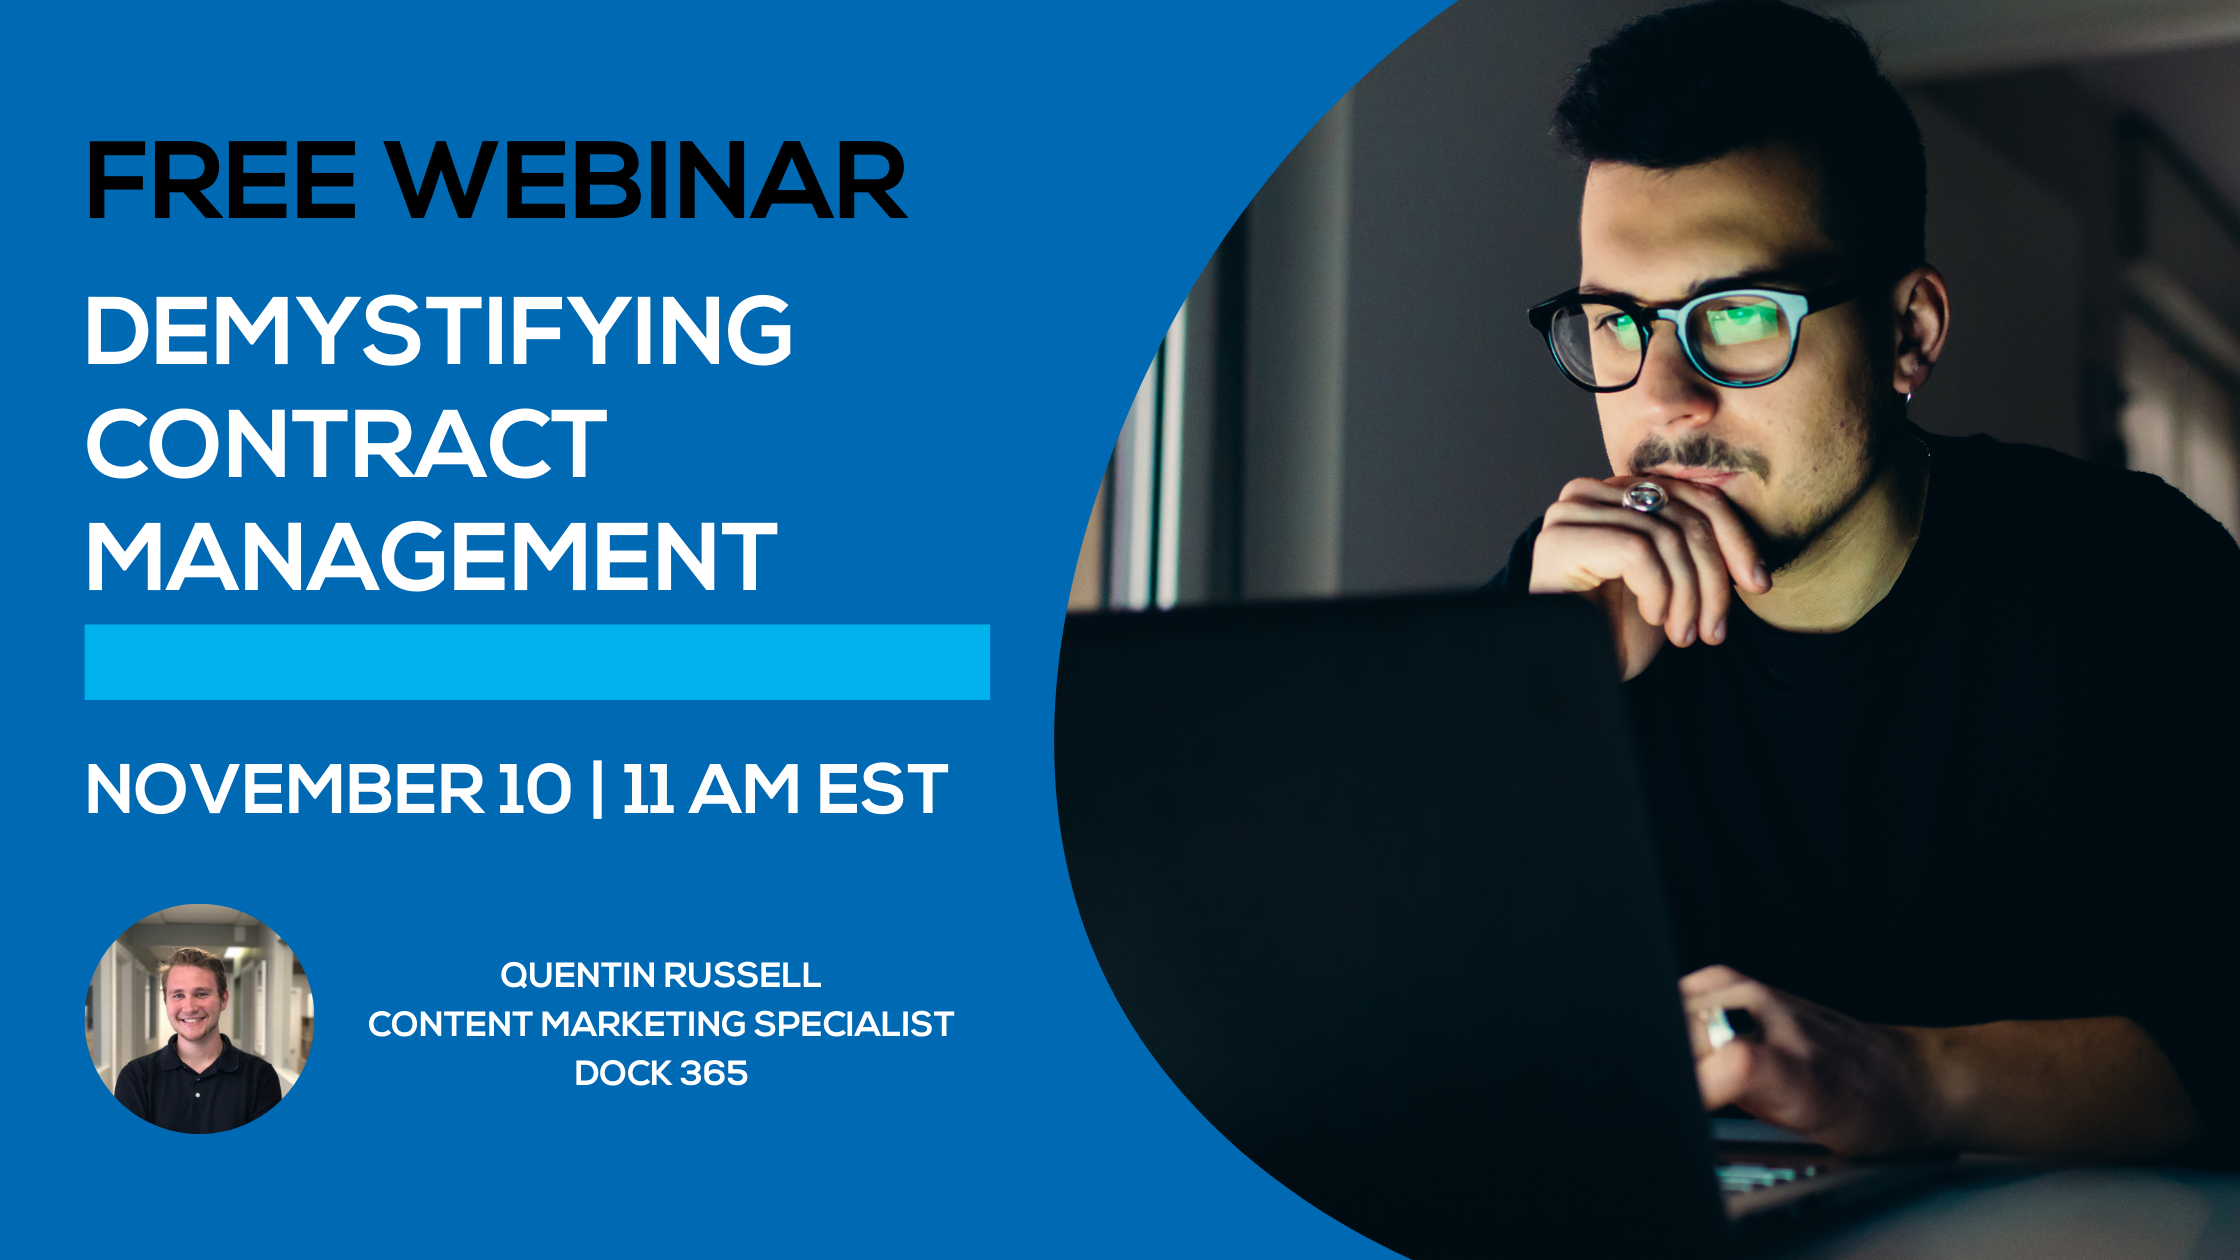 Free SharePoint Webinar - Demystifying Contract Management